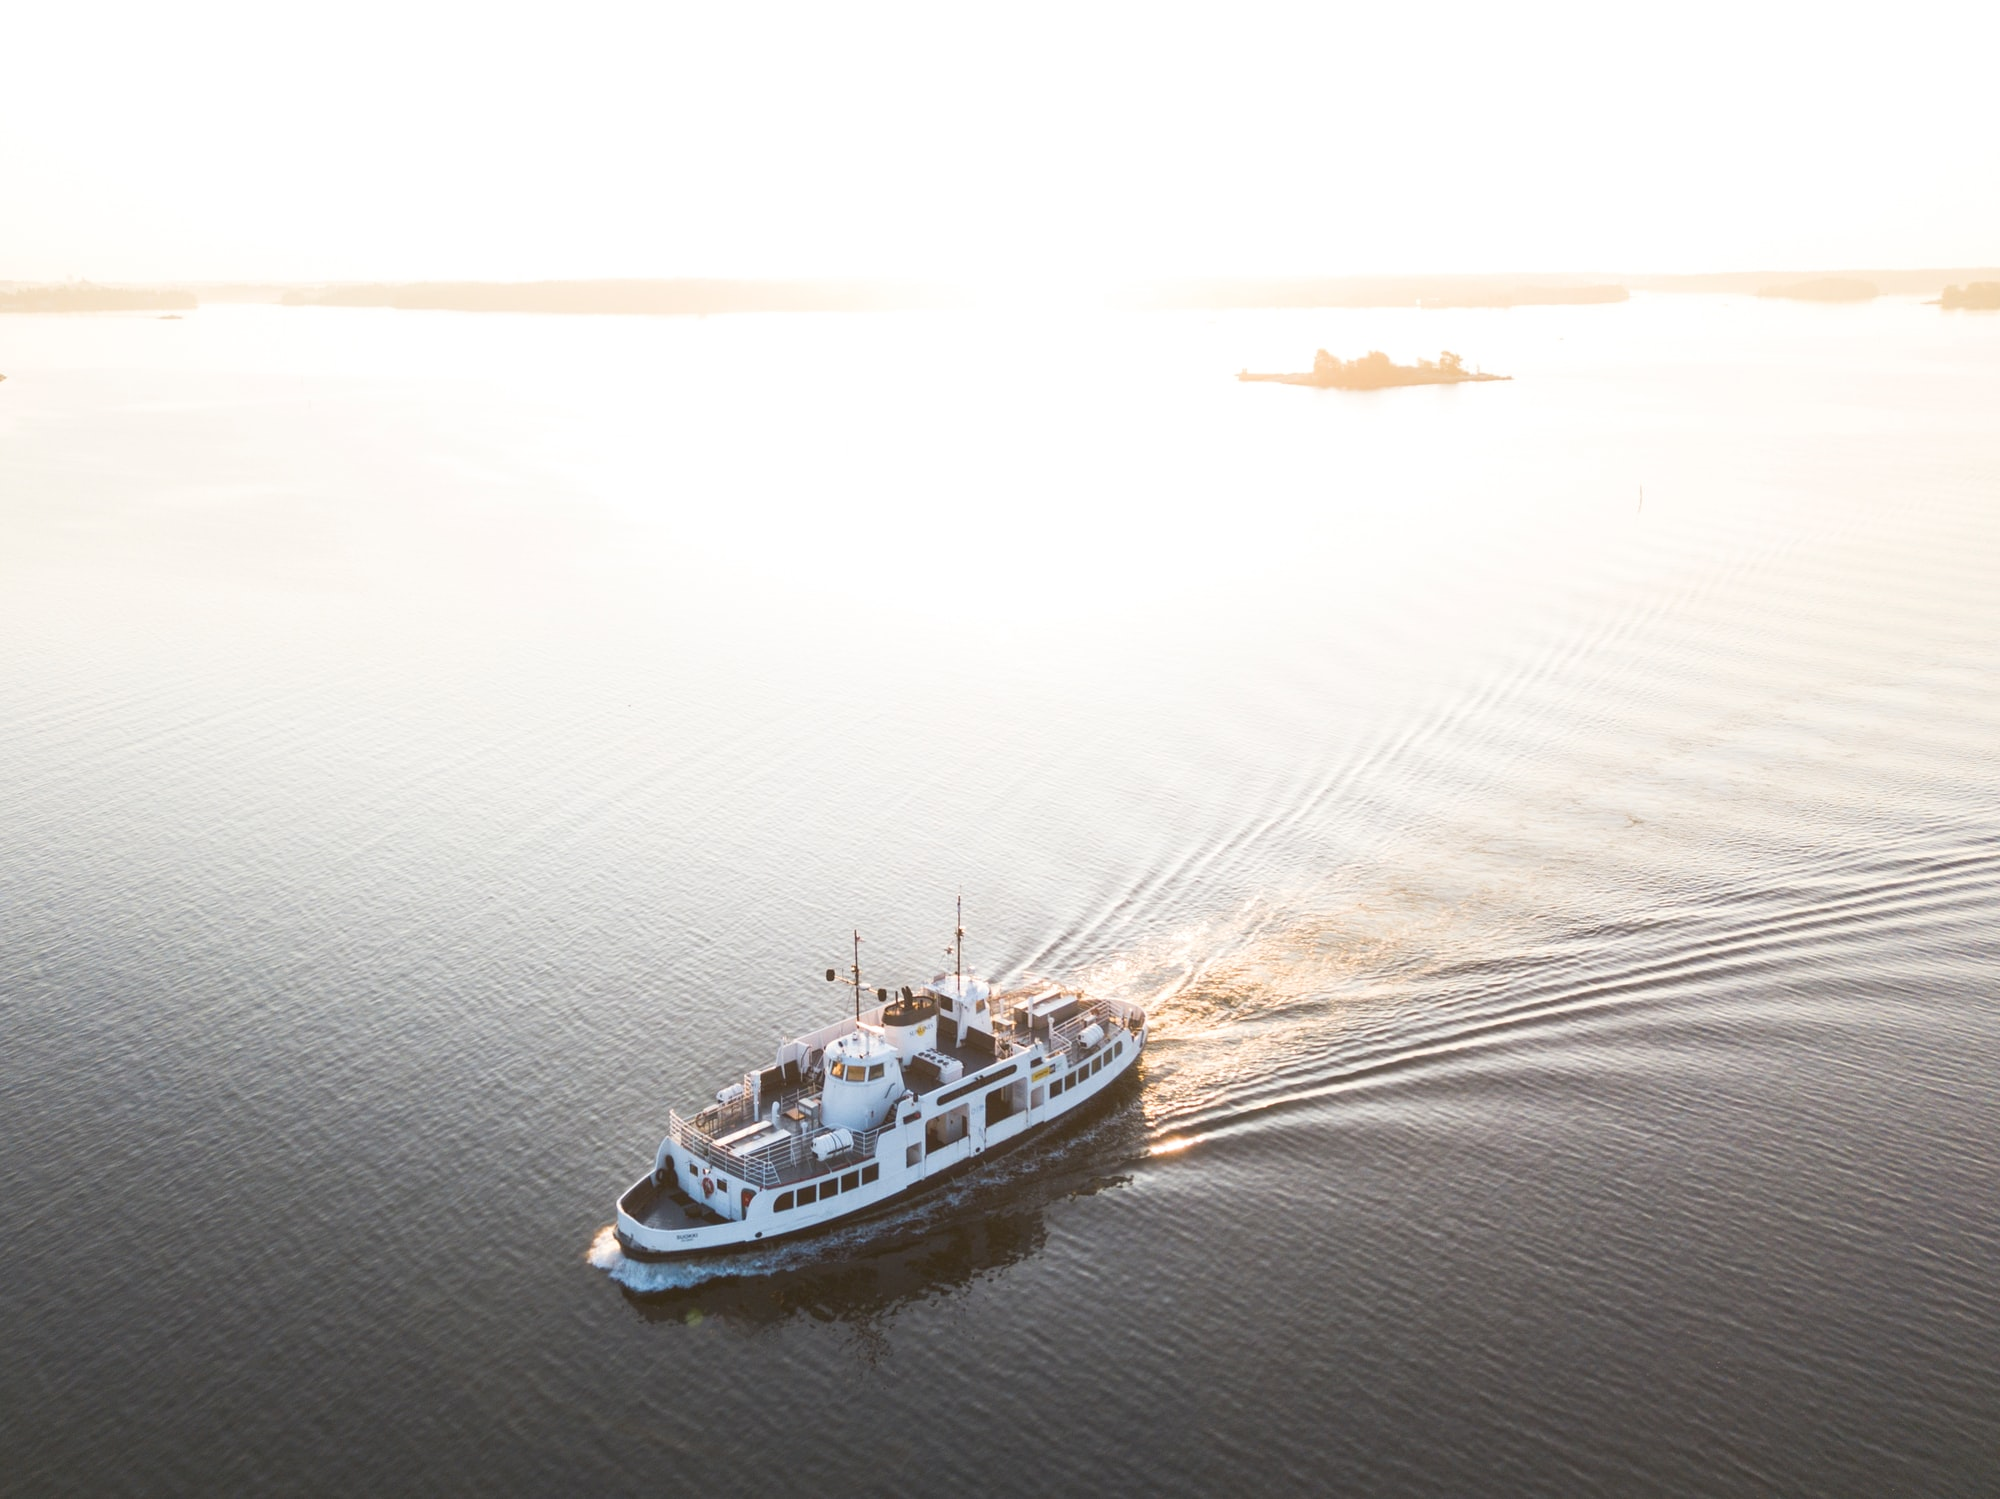 Top shot of a boat with two decks cutting through a water body.